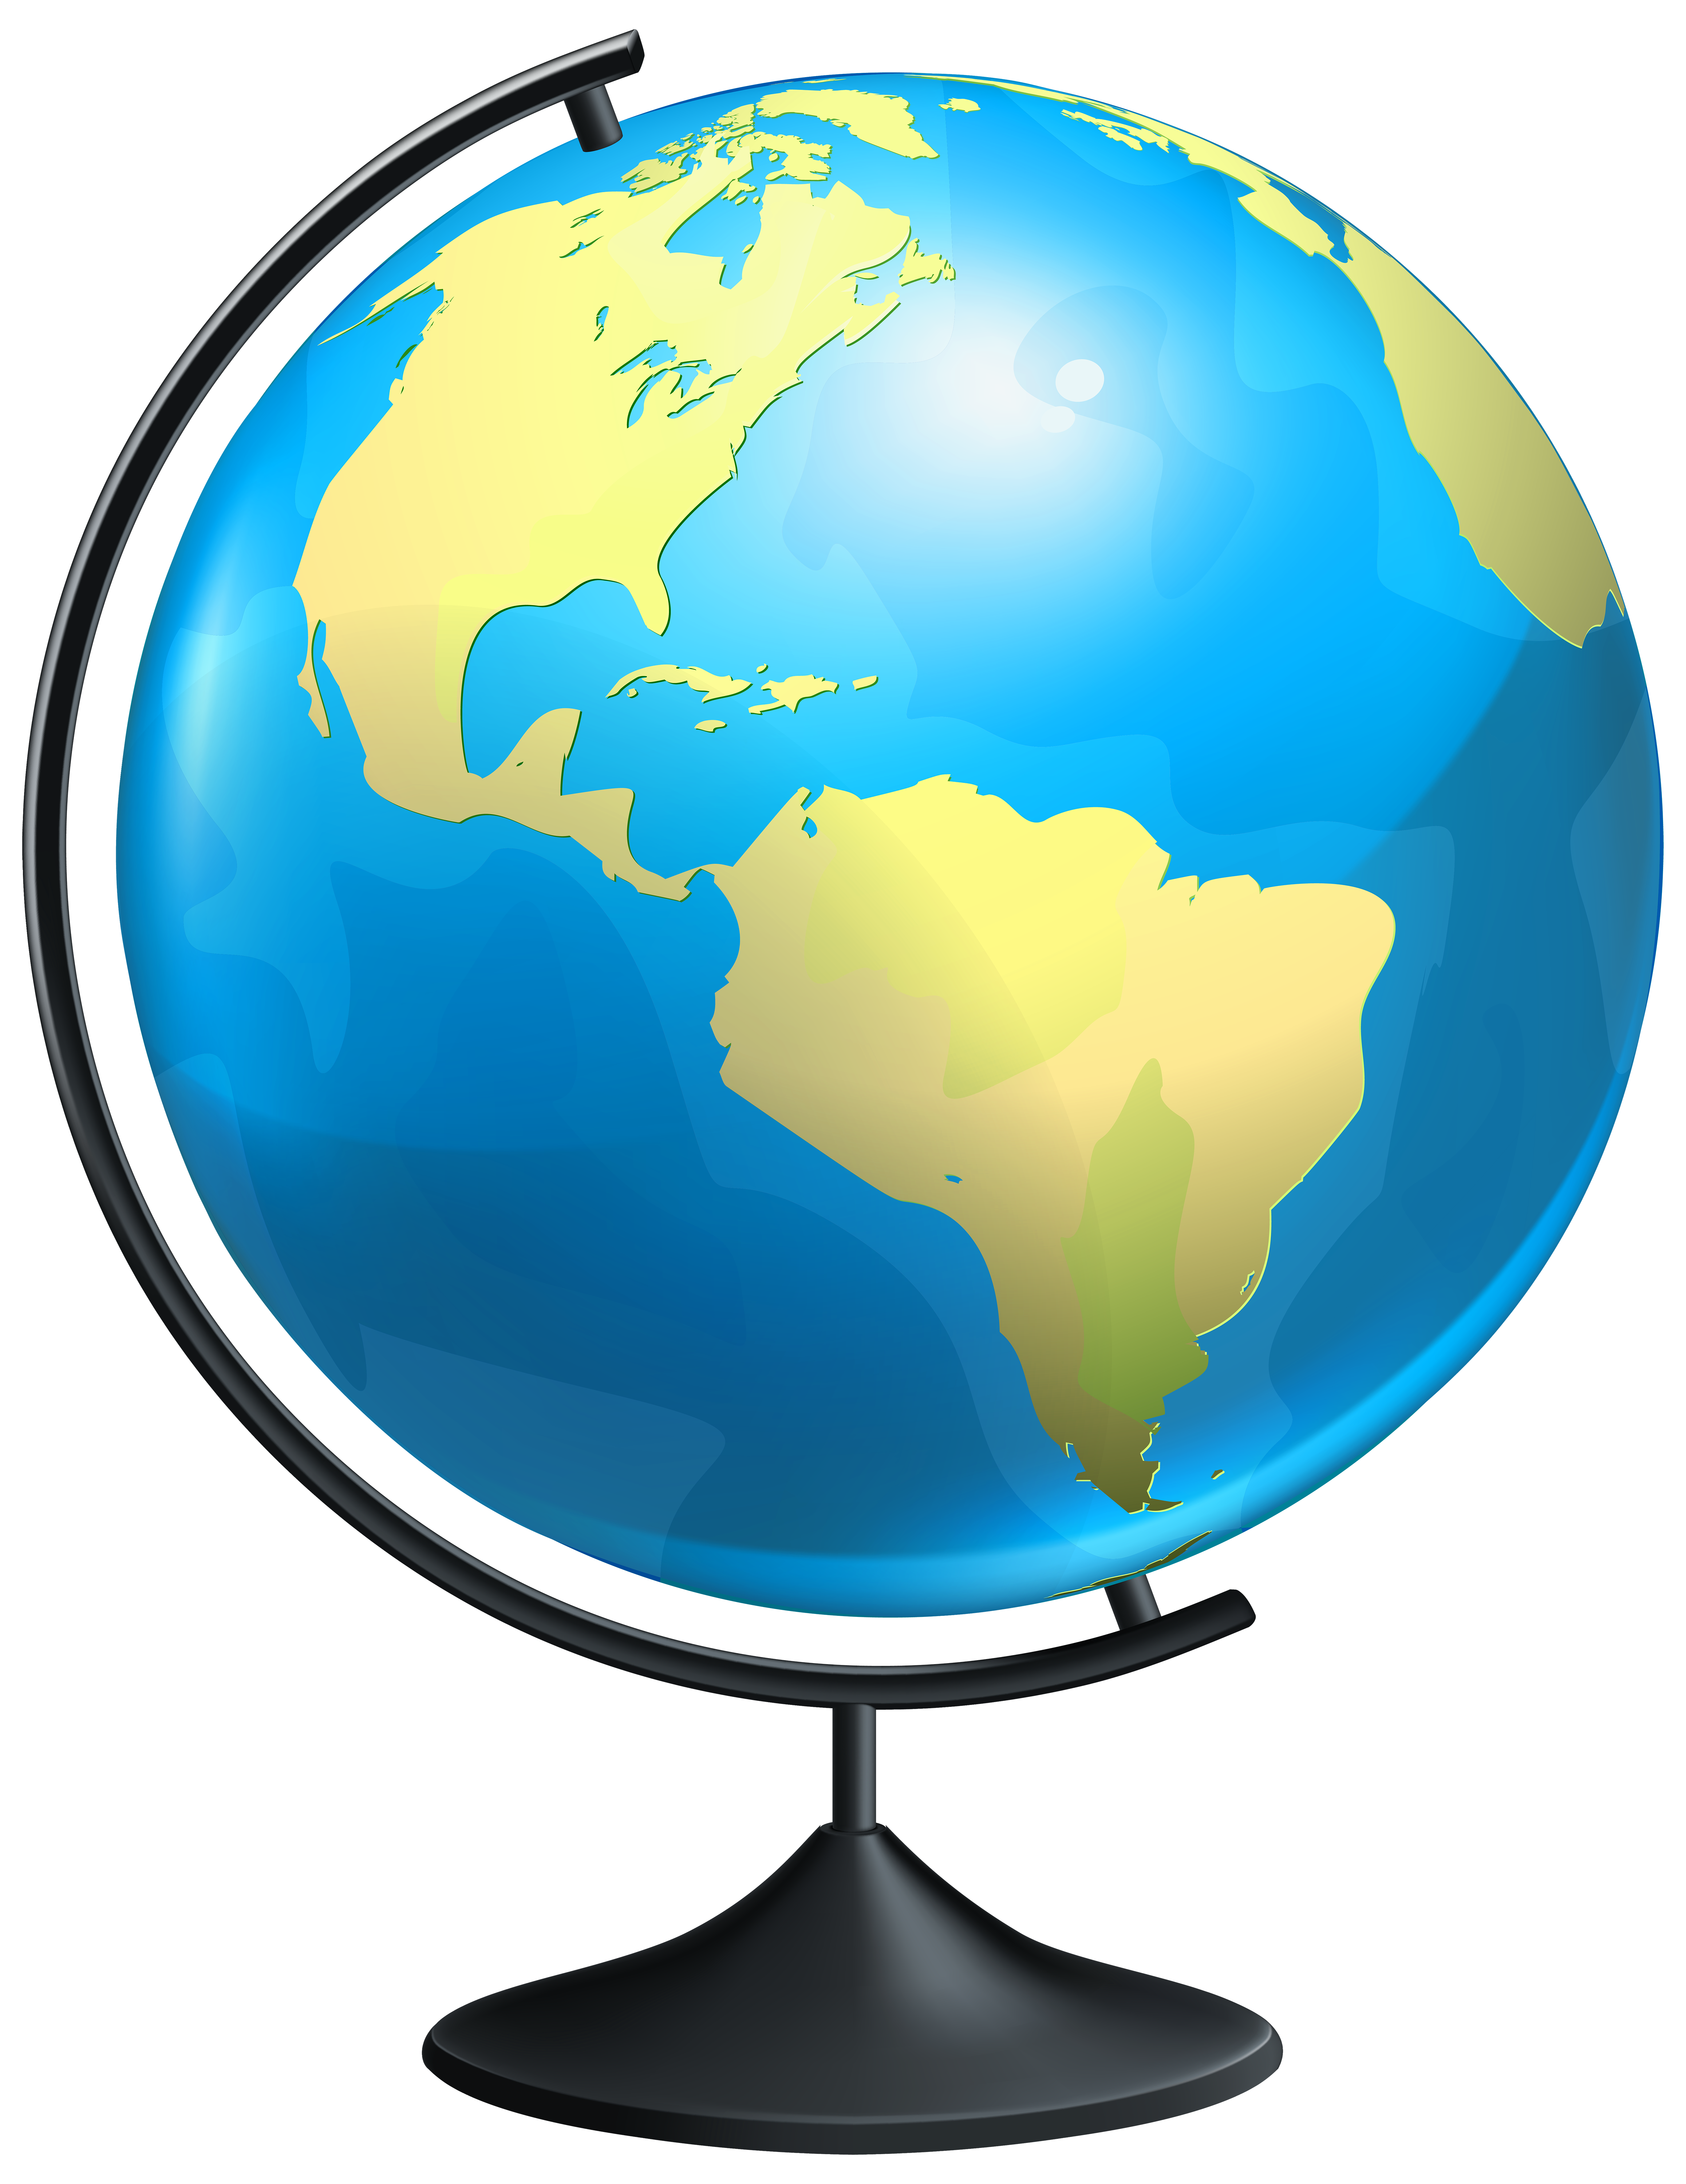 School globe transparent png. Worm clipart bioaccumulation